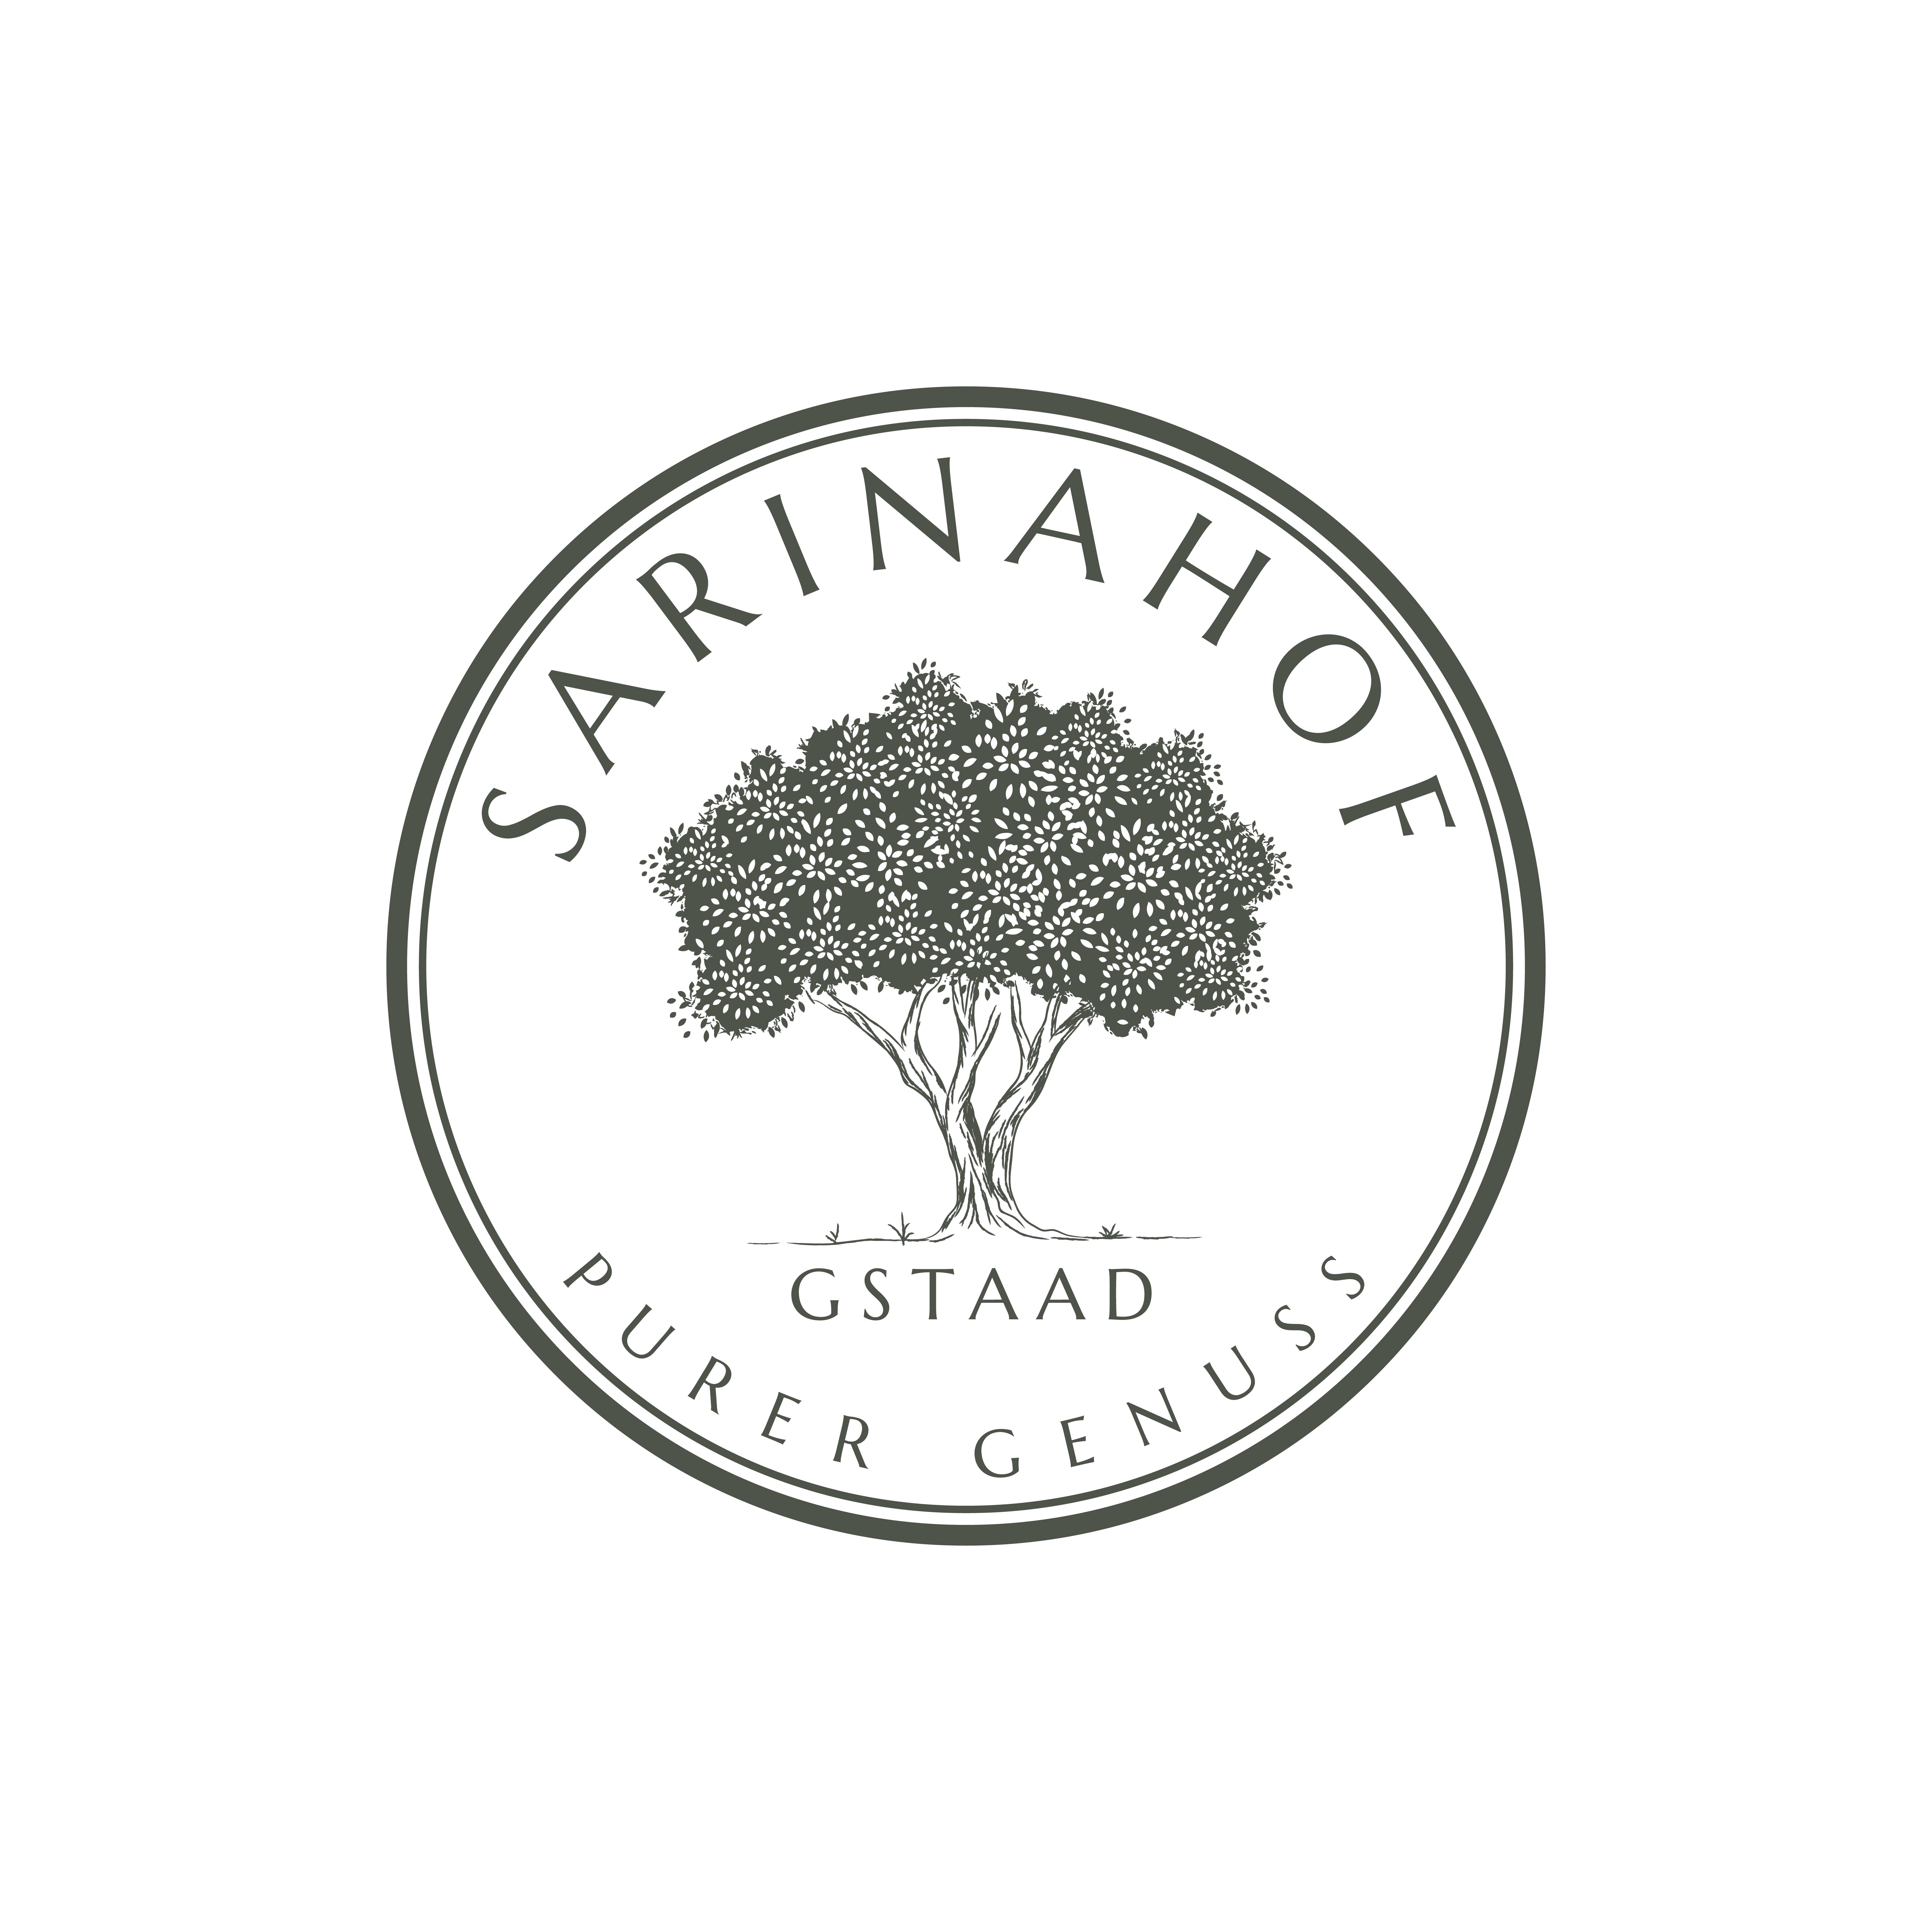 Logo+Style for organic farm with sustainable, nature-oriented approach and high quality products.